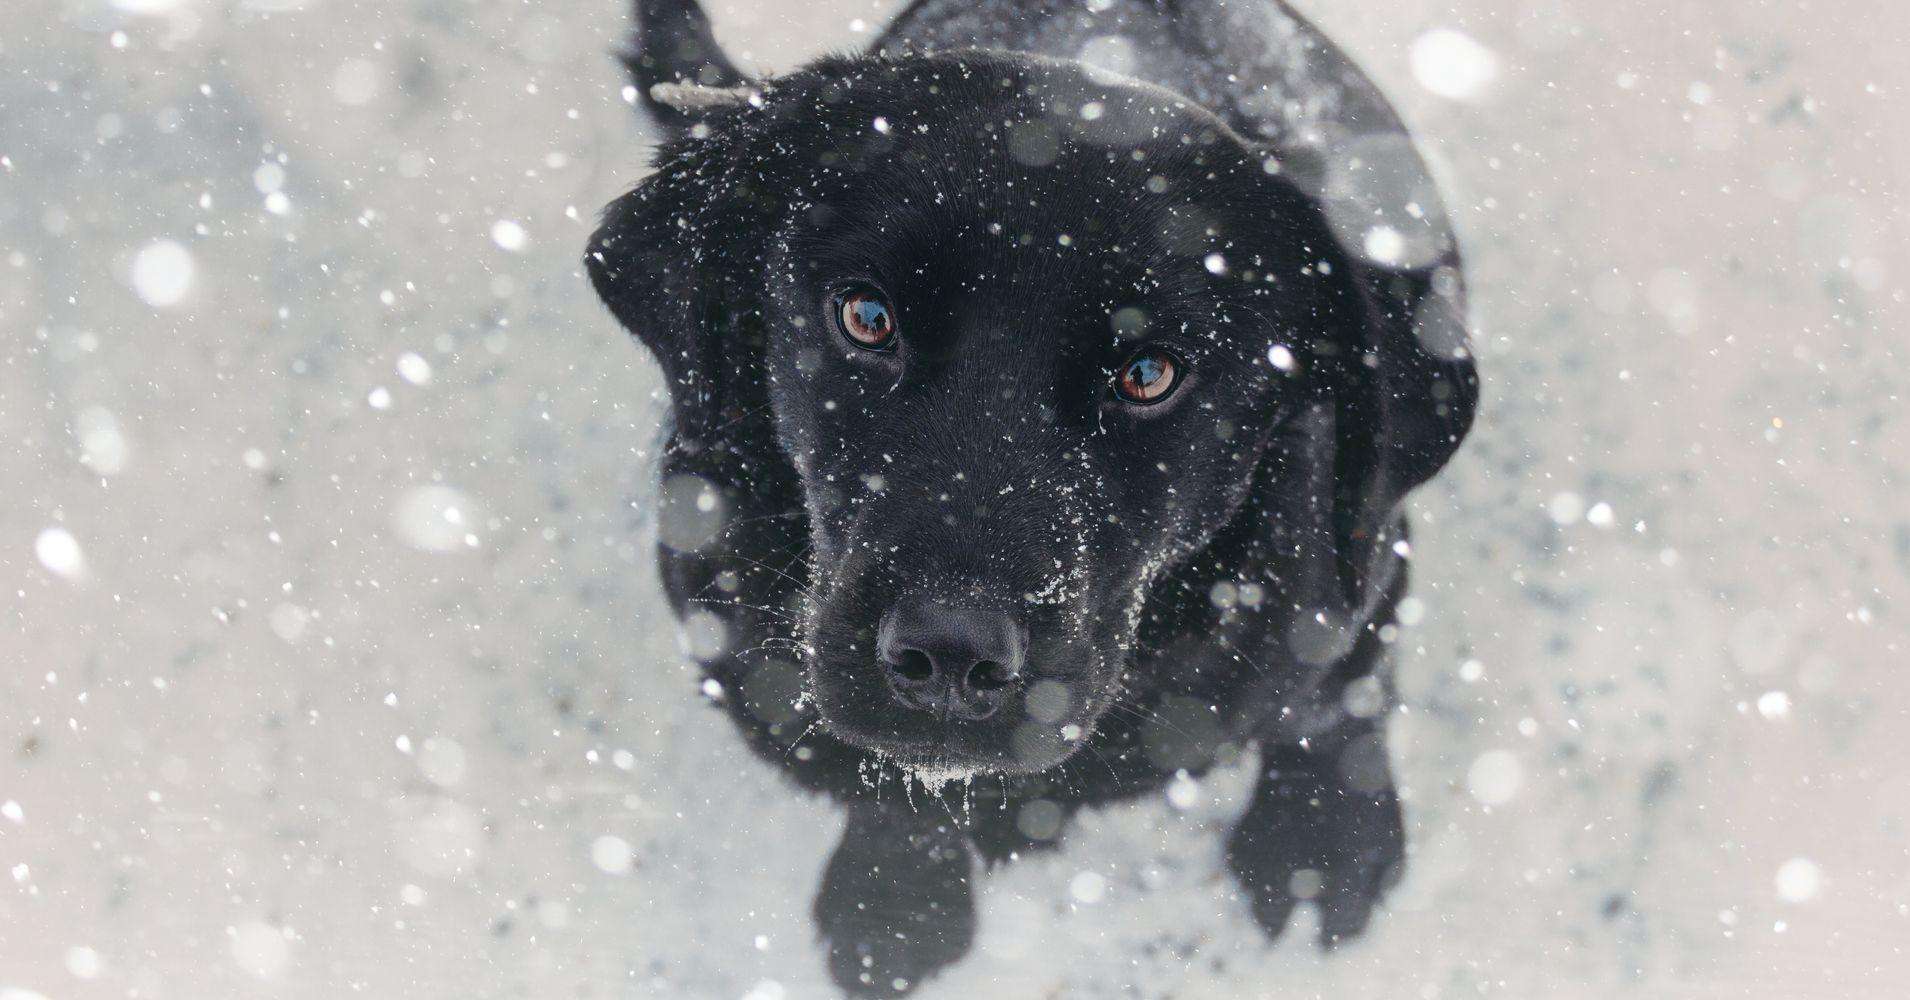 ad3f8d965f Dogs Are Dying After Being Left Out In The Cold. Here s How To Keep Them  Safe.